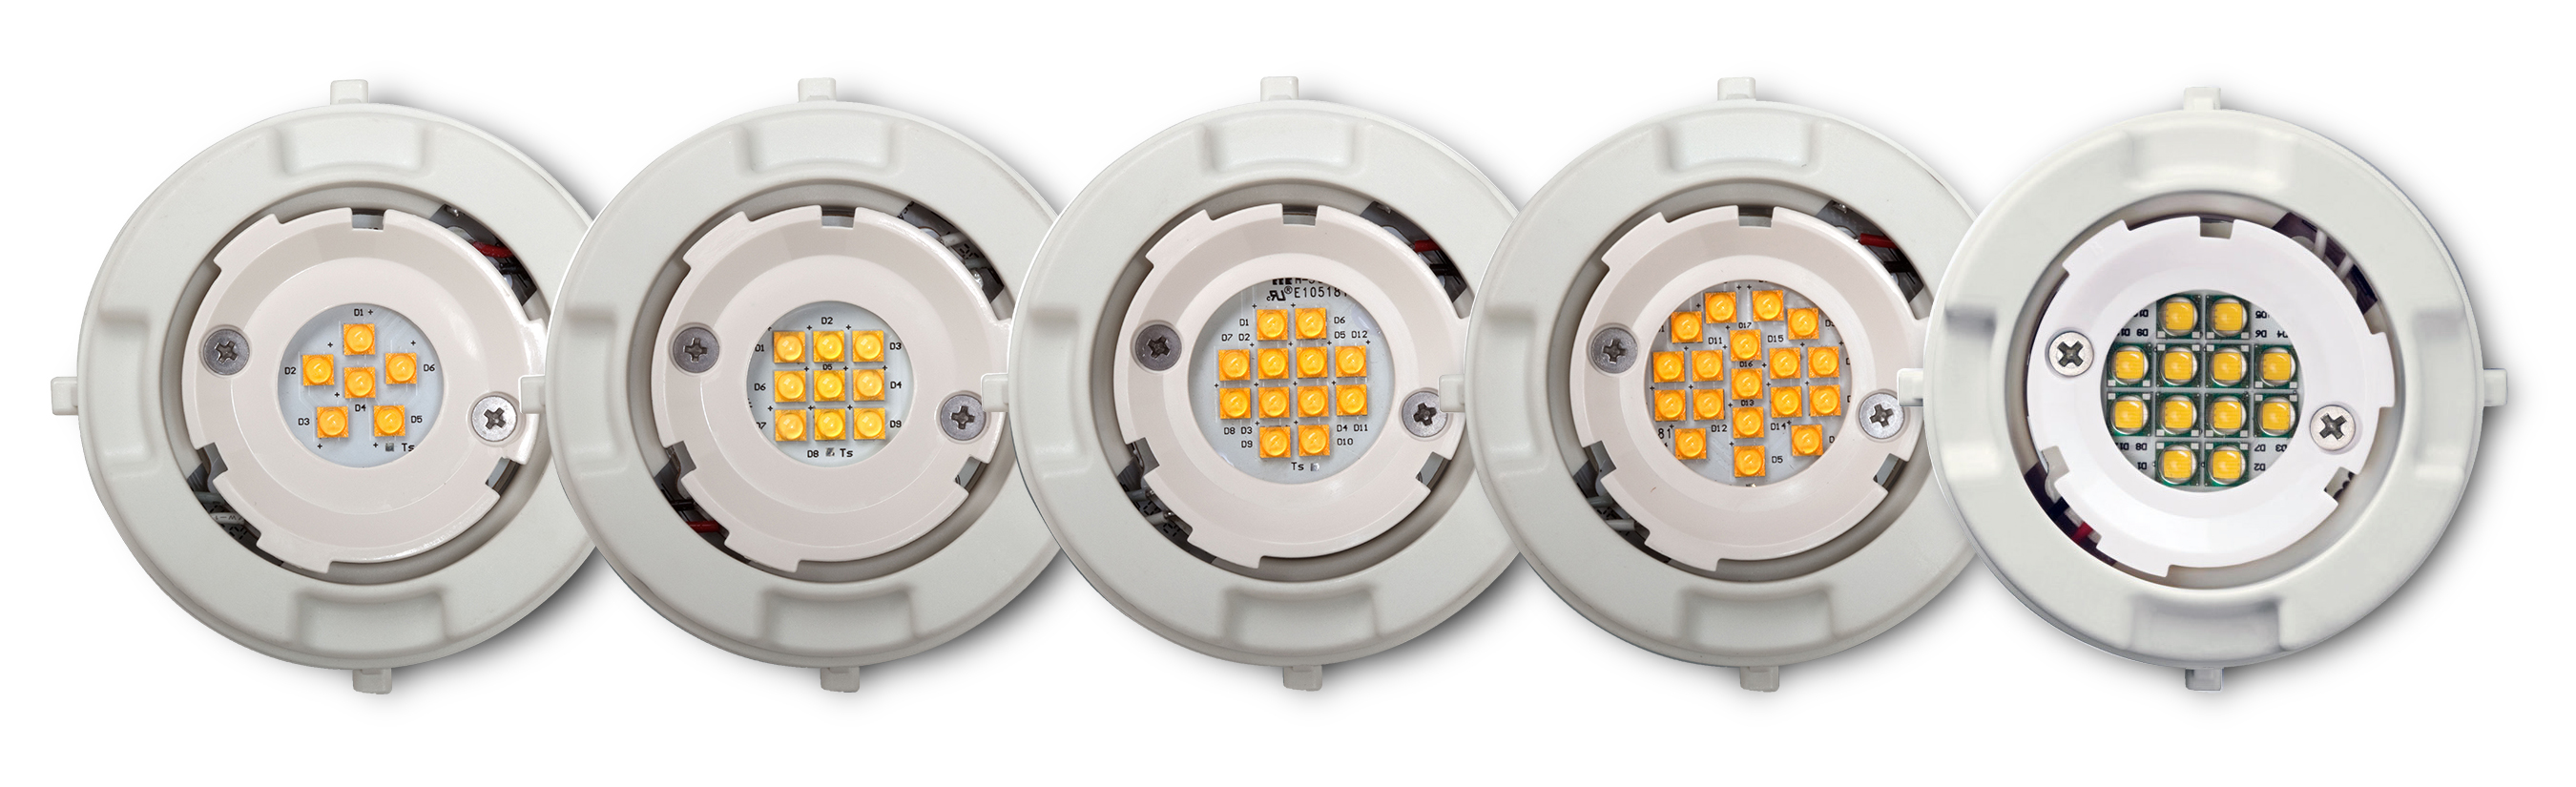 Beautiful GE Infusion™ LED Modules Deliver Maximum Flexibility In An Energy Efficient  Lighting Solution | Business Wire